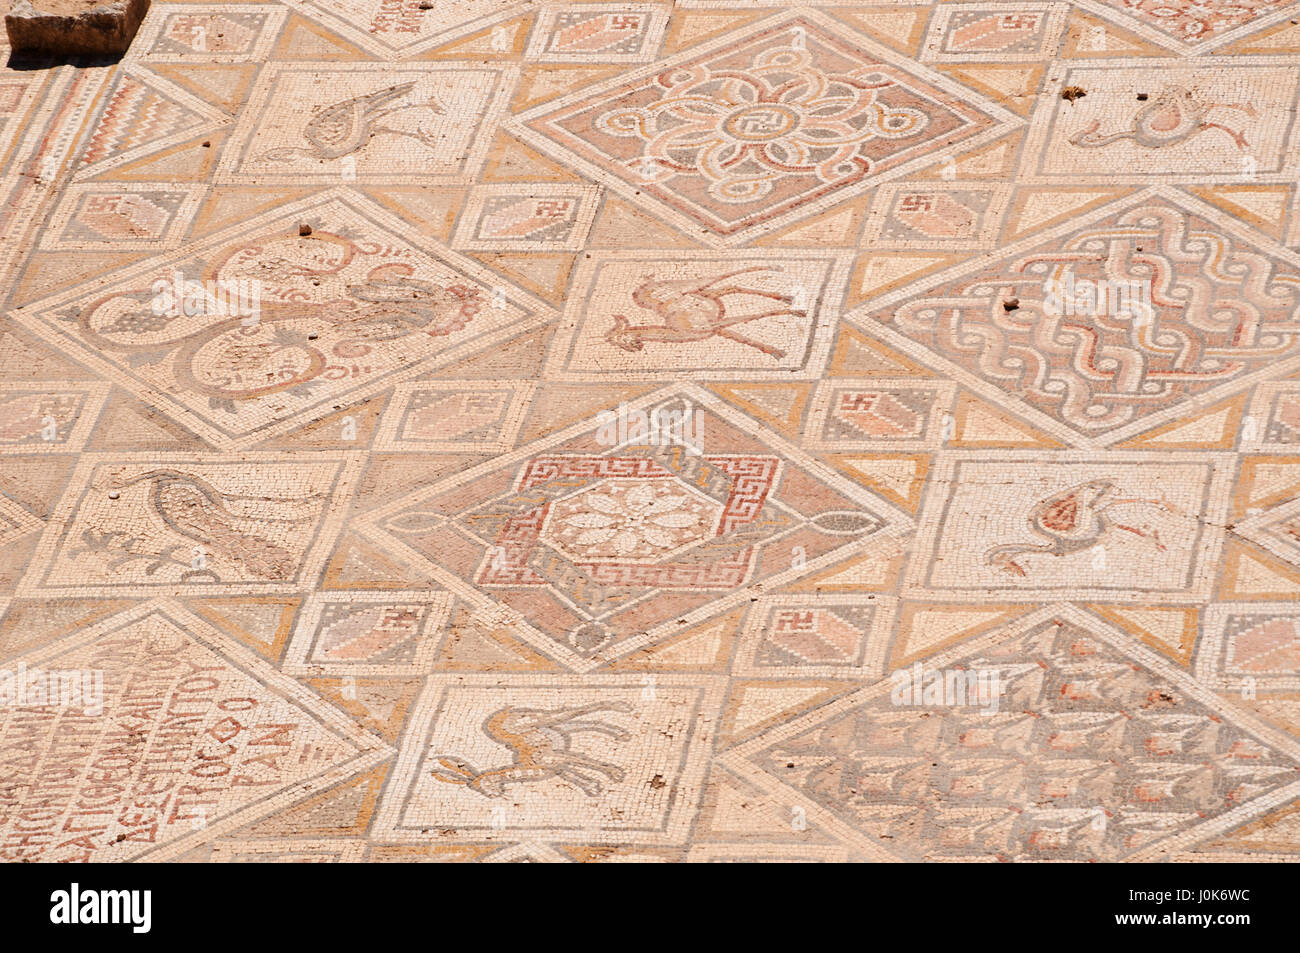 Details of the mosaics of the Byzantine churches found in the archaeological city of Jerash, one of the world's - Stock Image